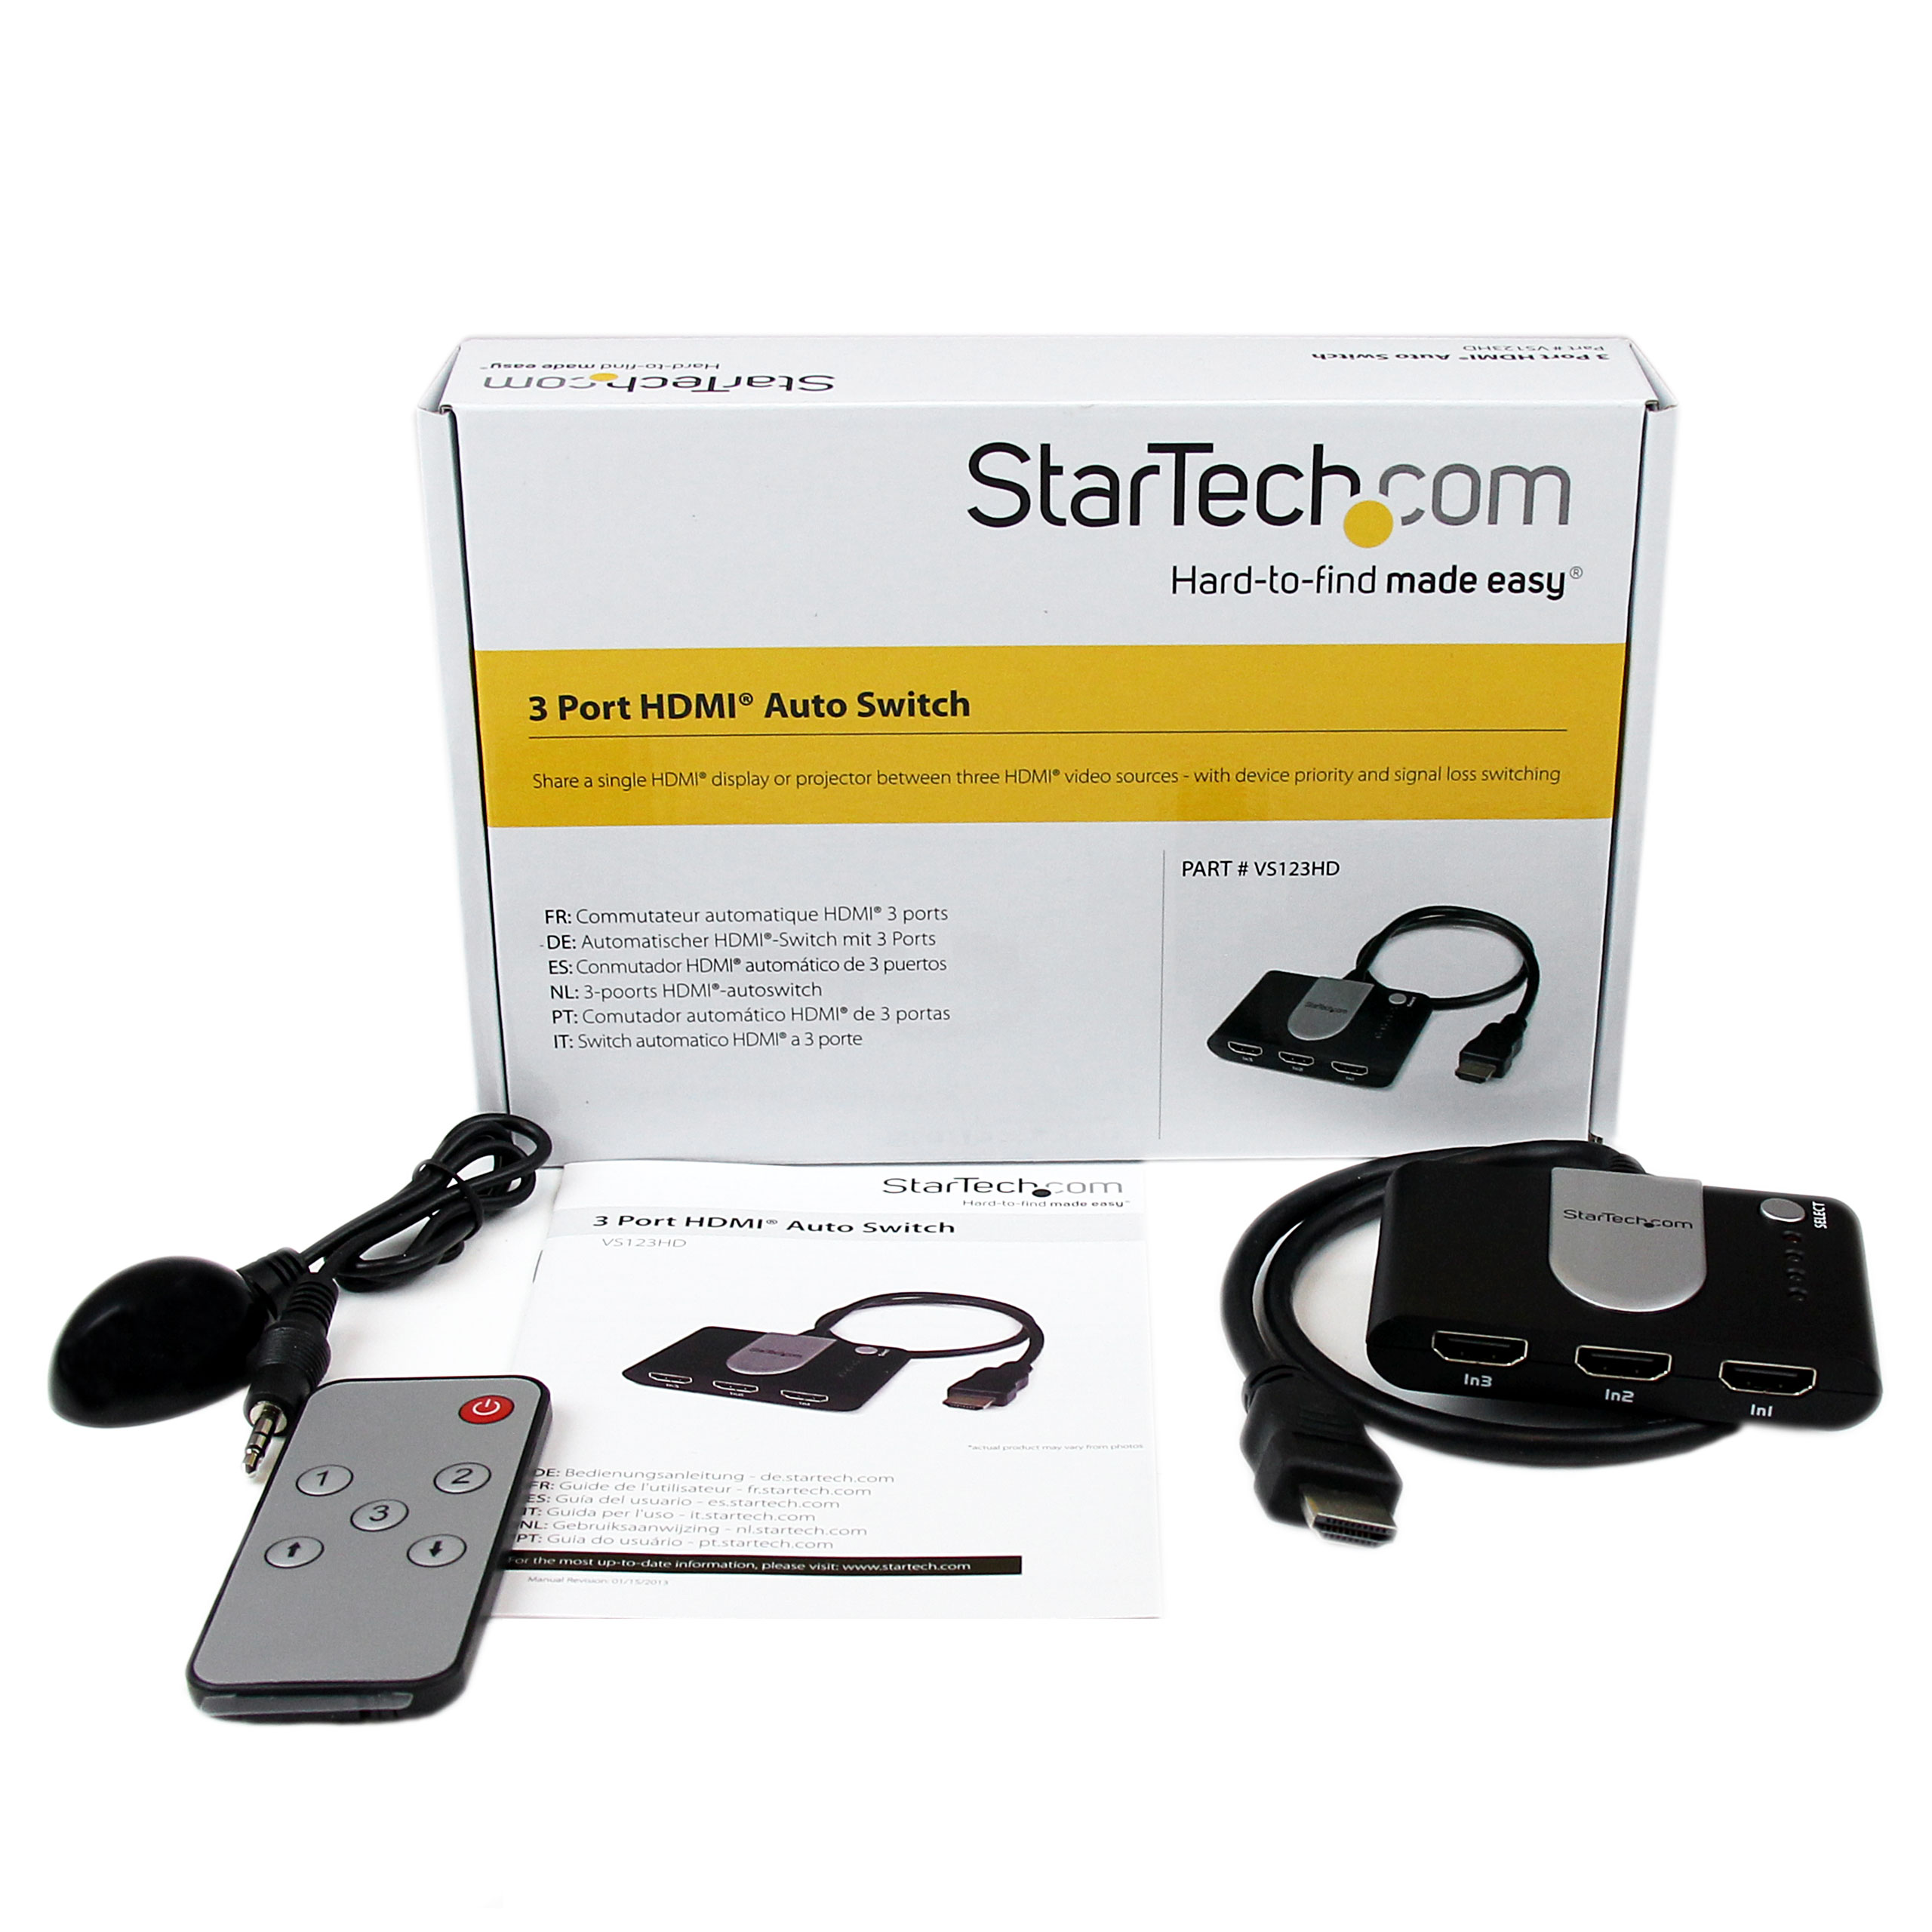 Startechcom 3 Port Hdmi Auto Switch W Ir Remote Control By Office Included